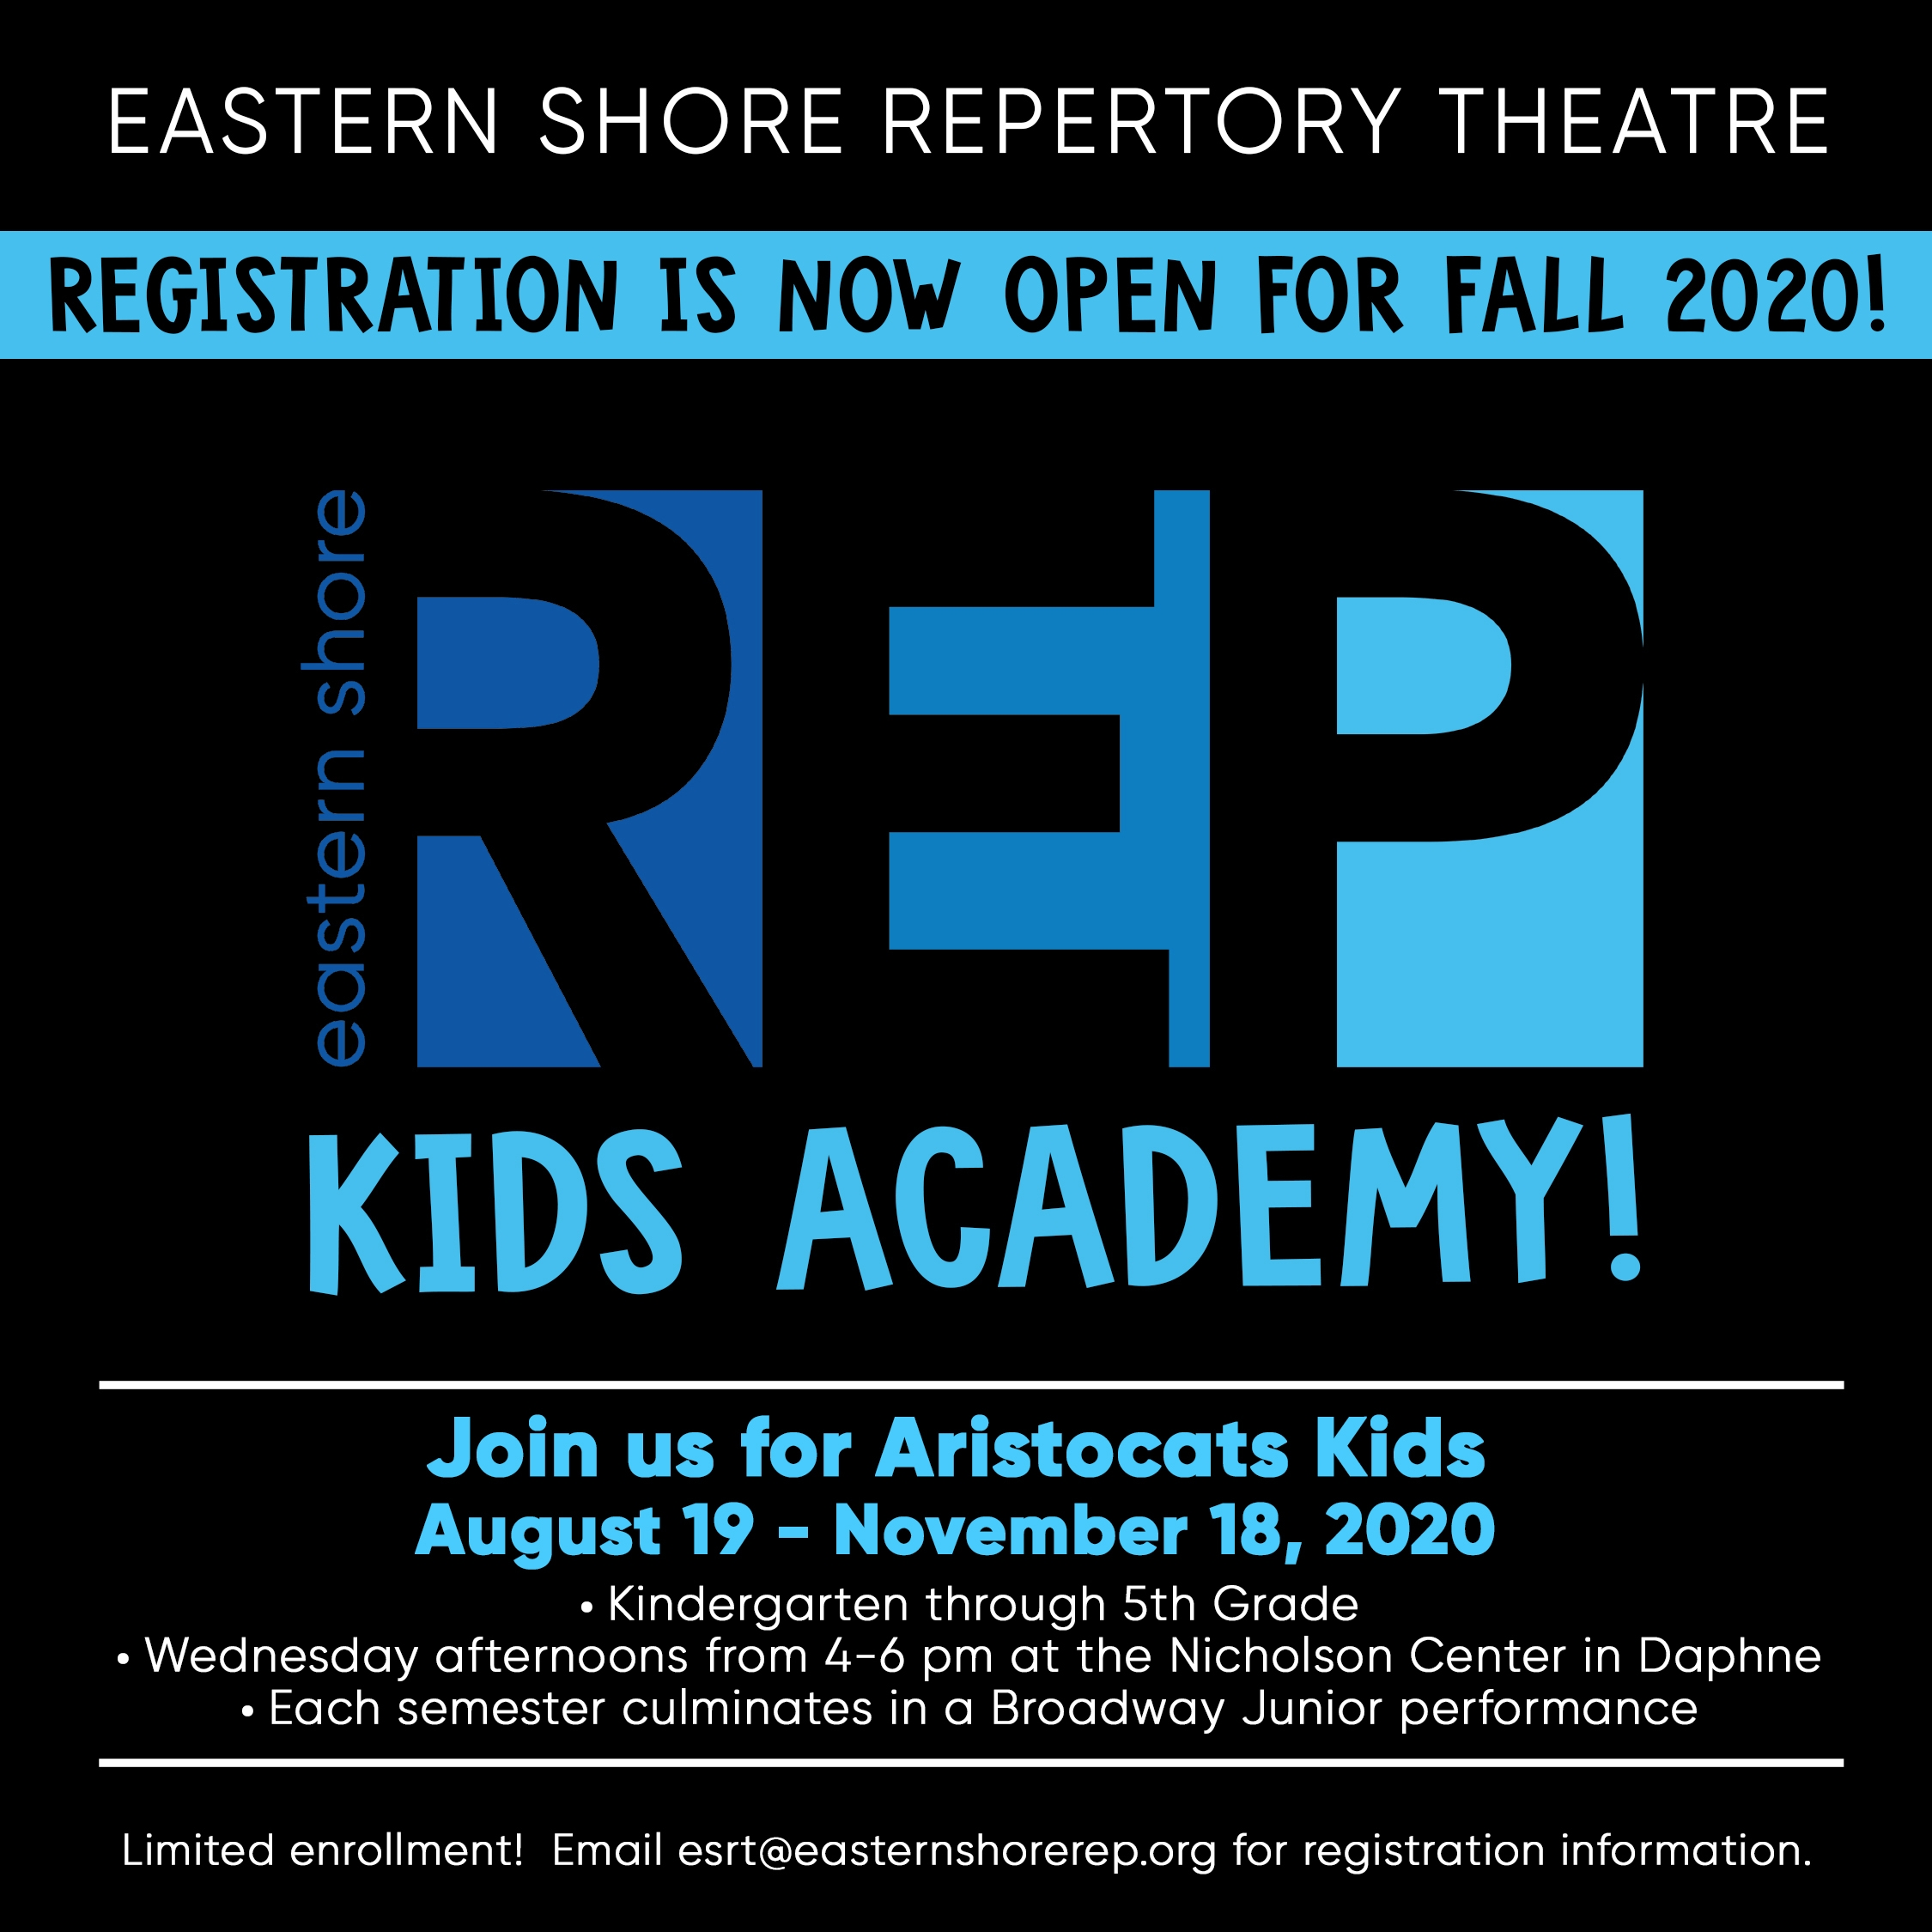 ESRT Kids Academy Fall 2020 post copy